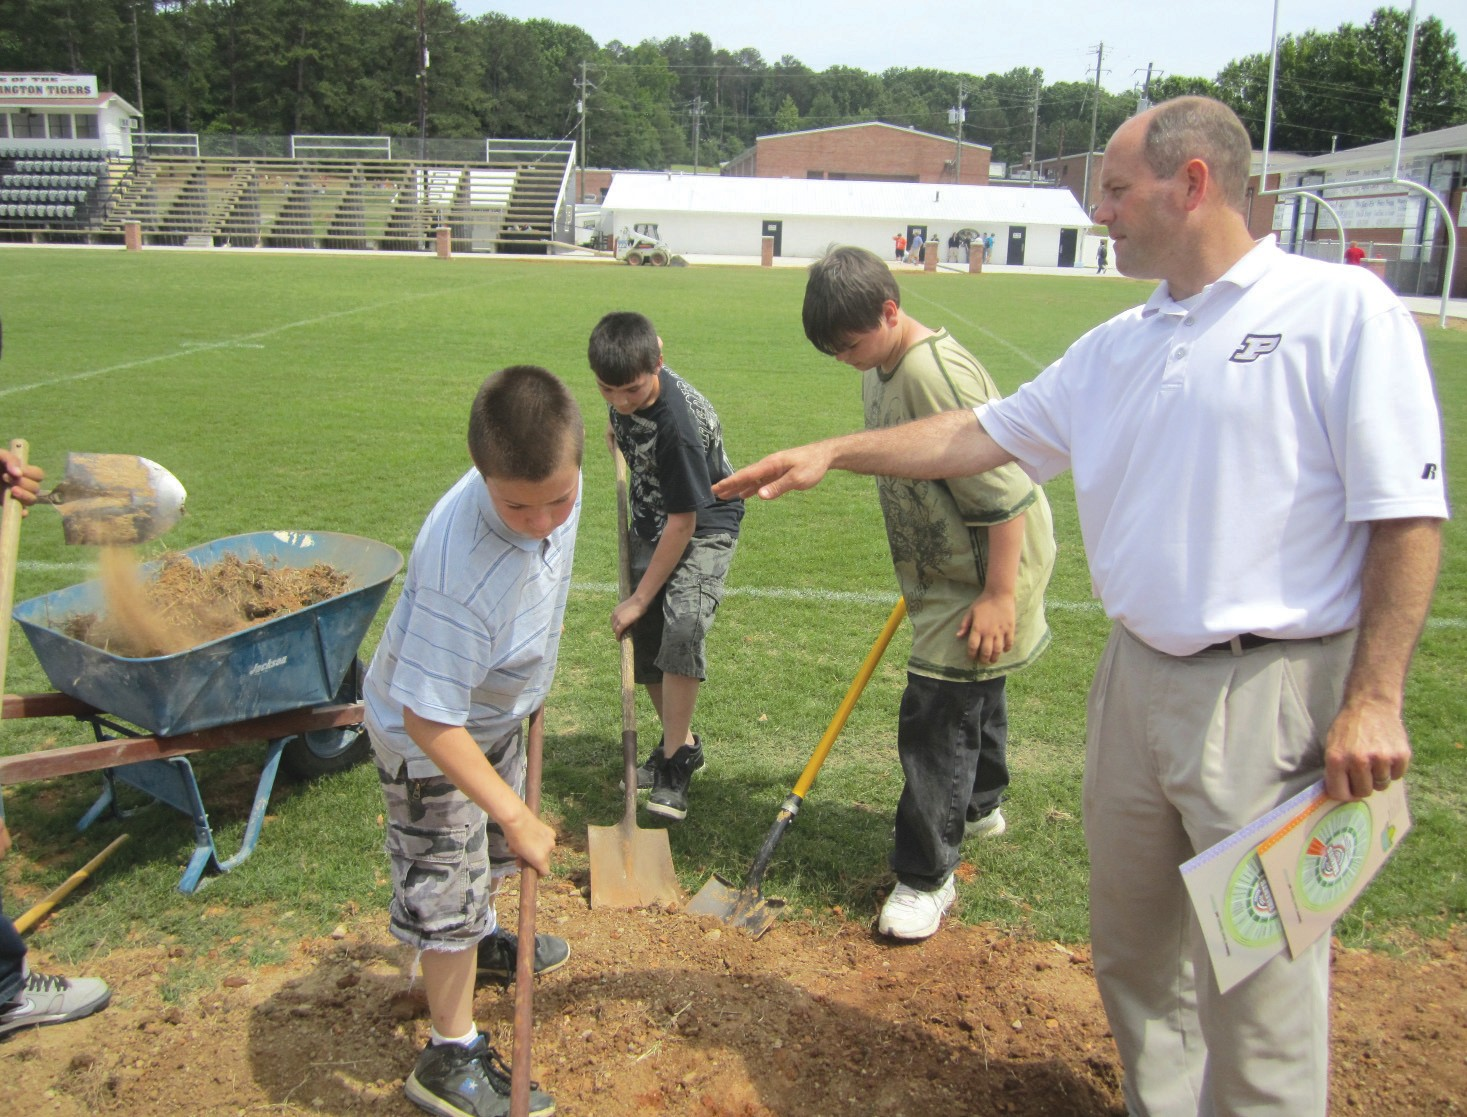 Dr. Philip Cleveland, principal of J. B. Pennington High School, is picured with seventh-grade students (from left) Joey Walden, Matthew Salinas, and Anthony Peek as they work on improvements to the school's football field.